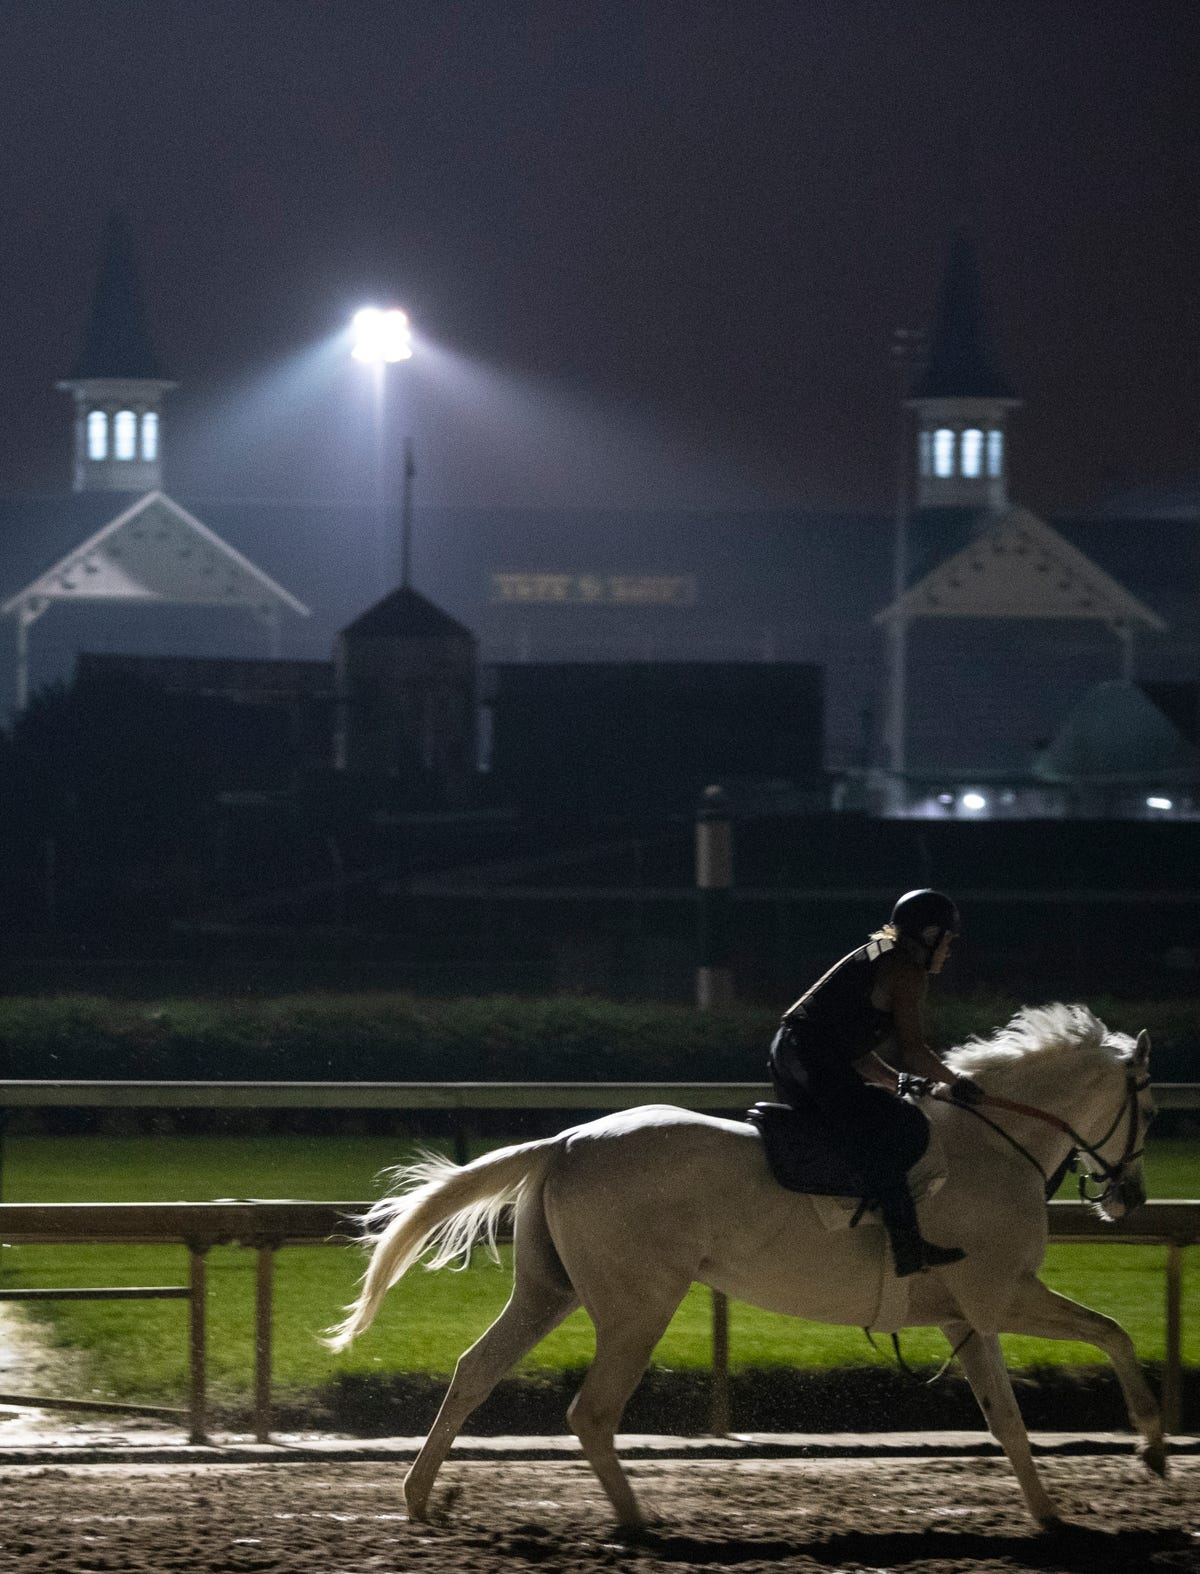 Kentucky Derby 2019: Free expert picks by horse racing pros and others